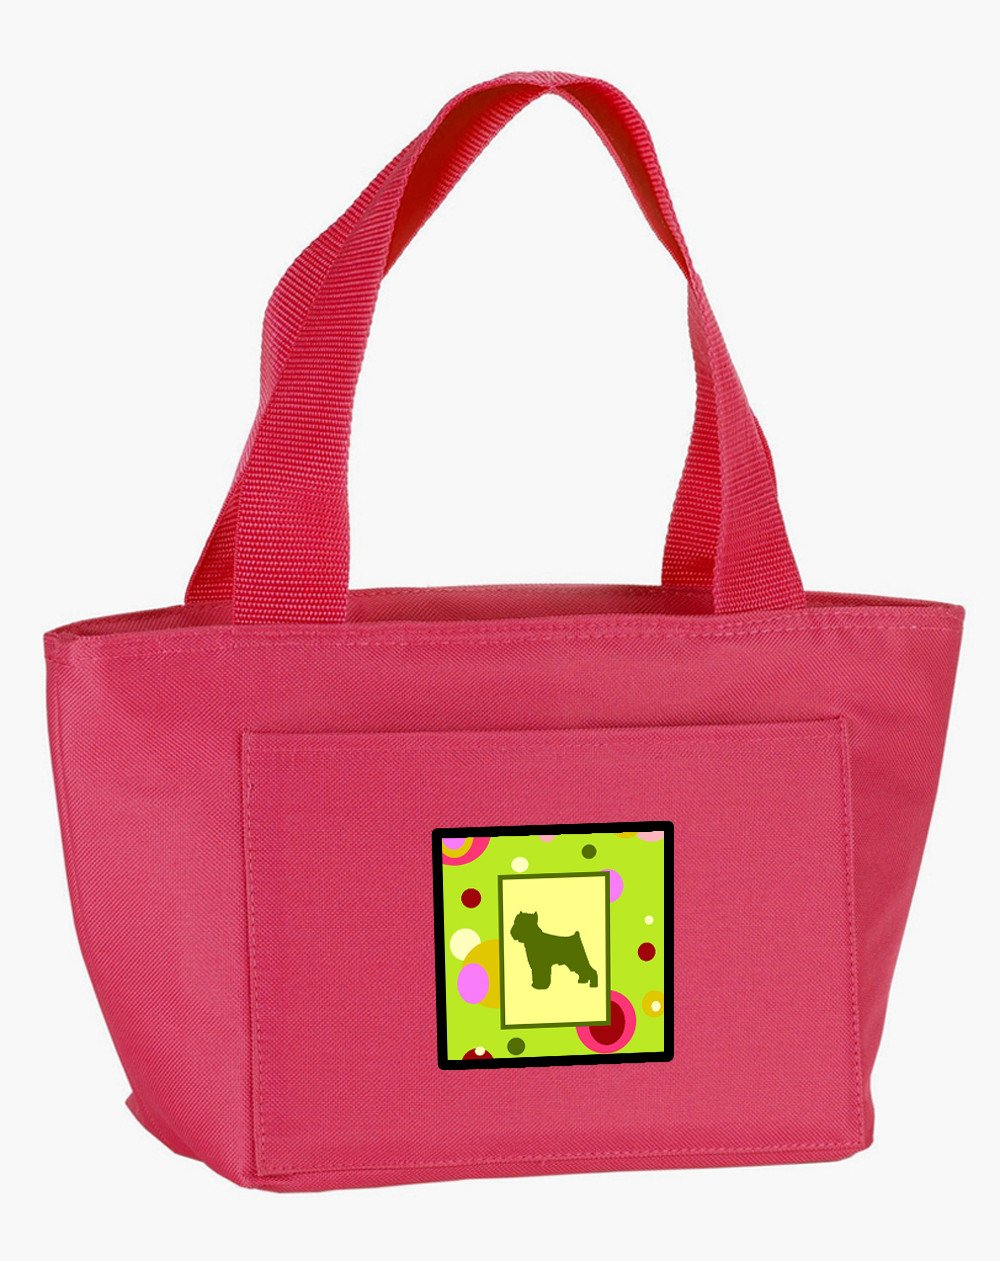 Lime Green Dots Brussels Griffon   Lunch Bag CK1096PK-8808 by Caroline's Treasures